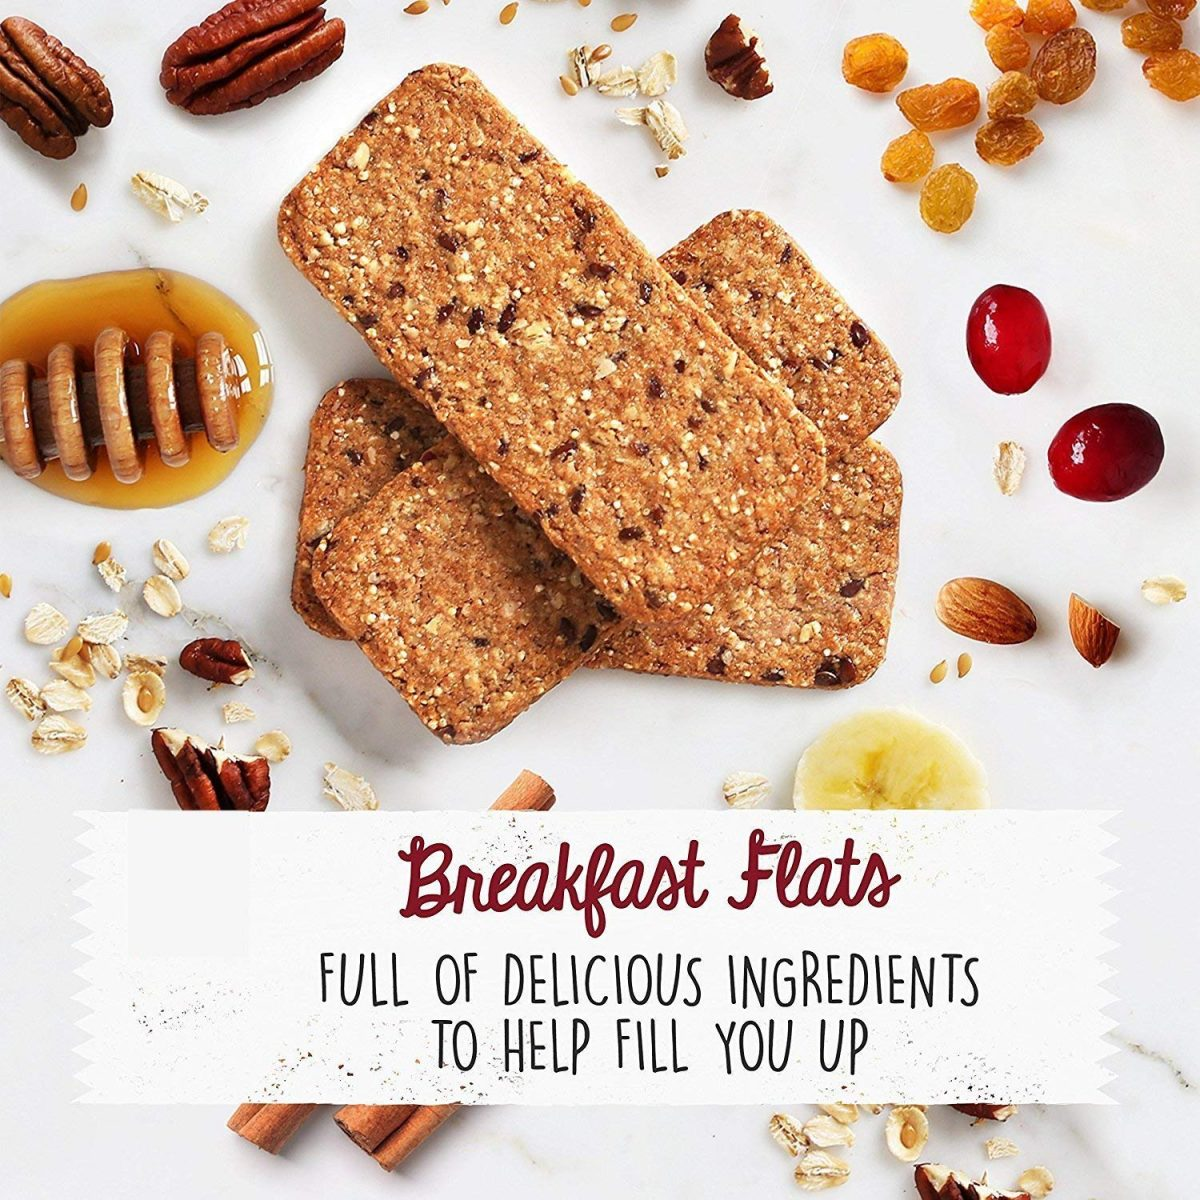 Quaker Breakfast Flats Coupon Deal